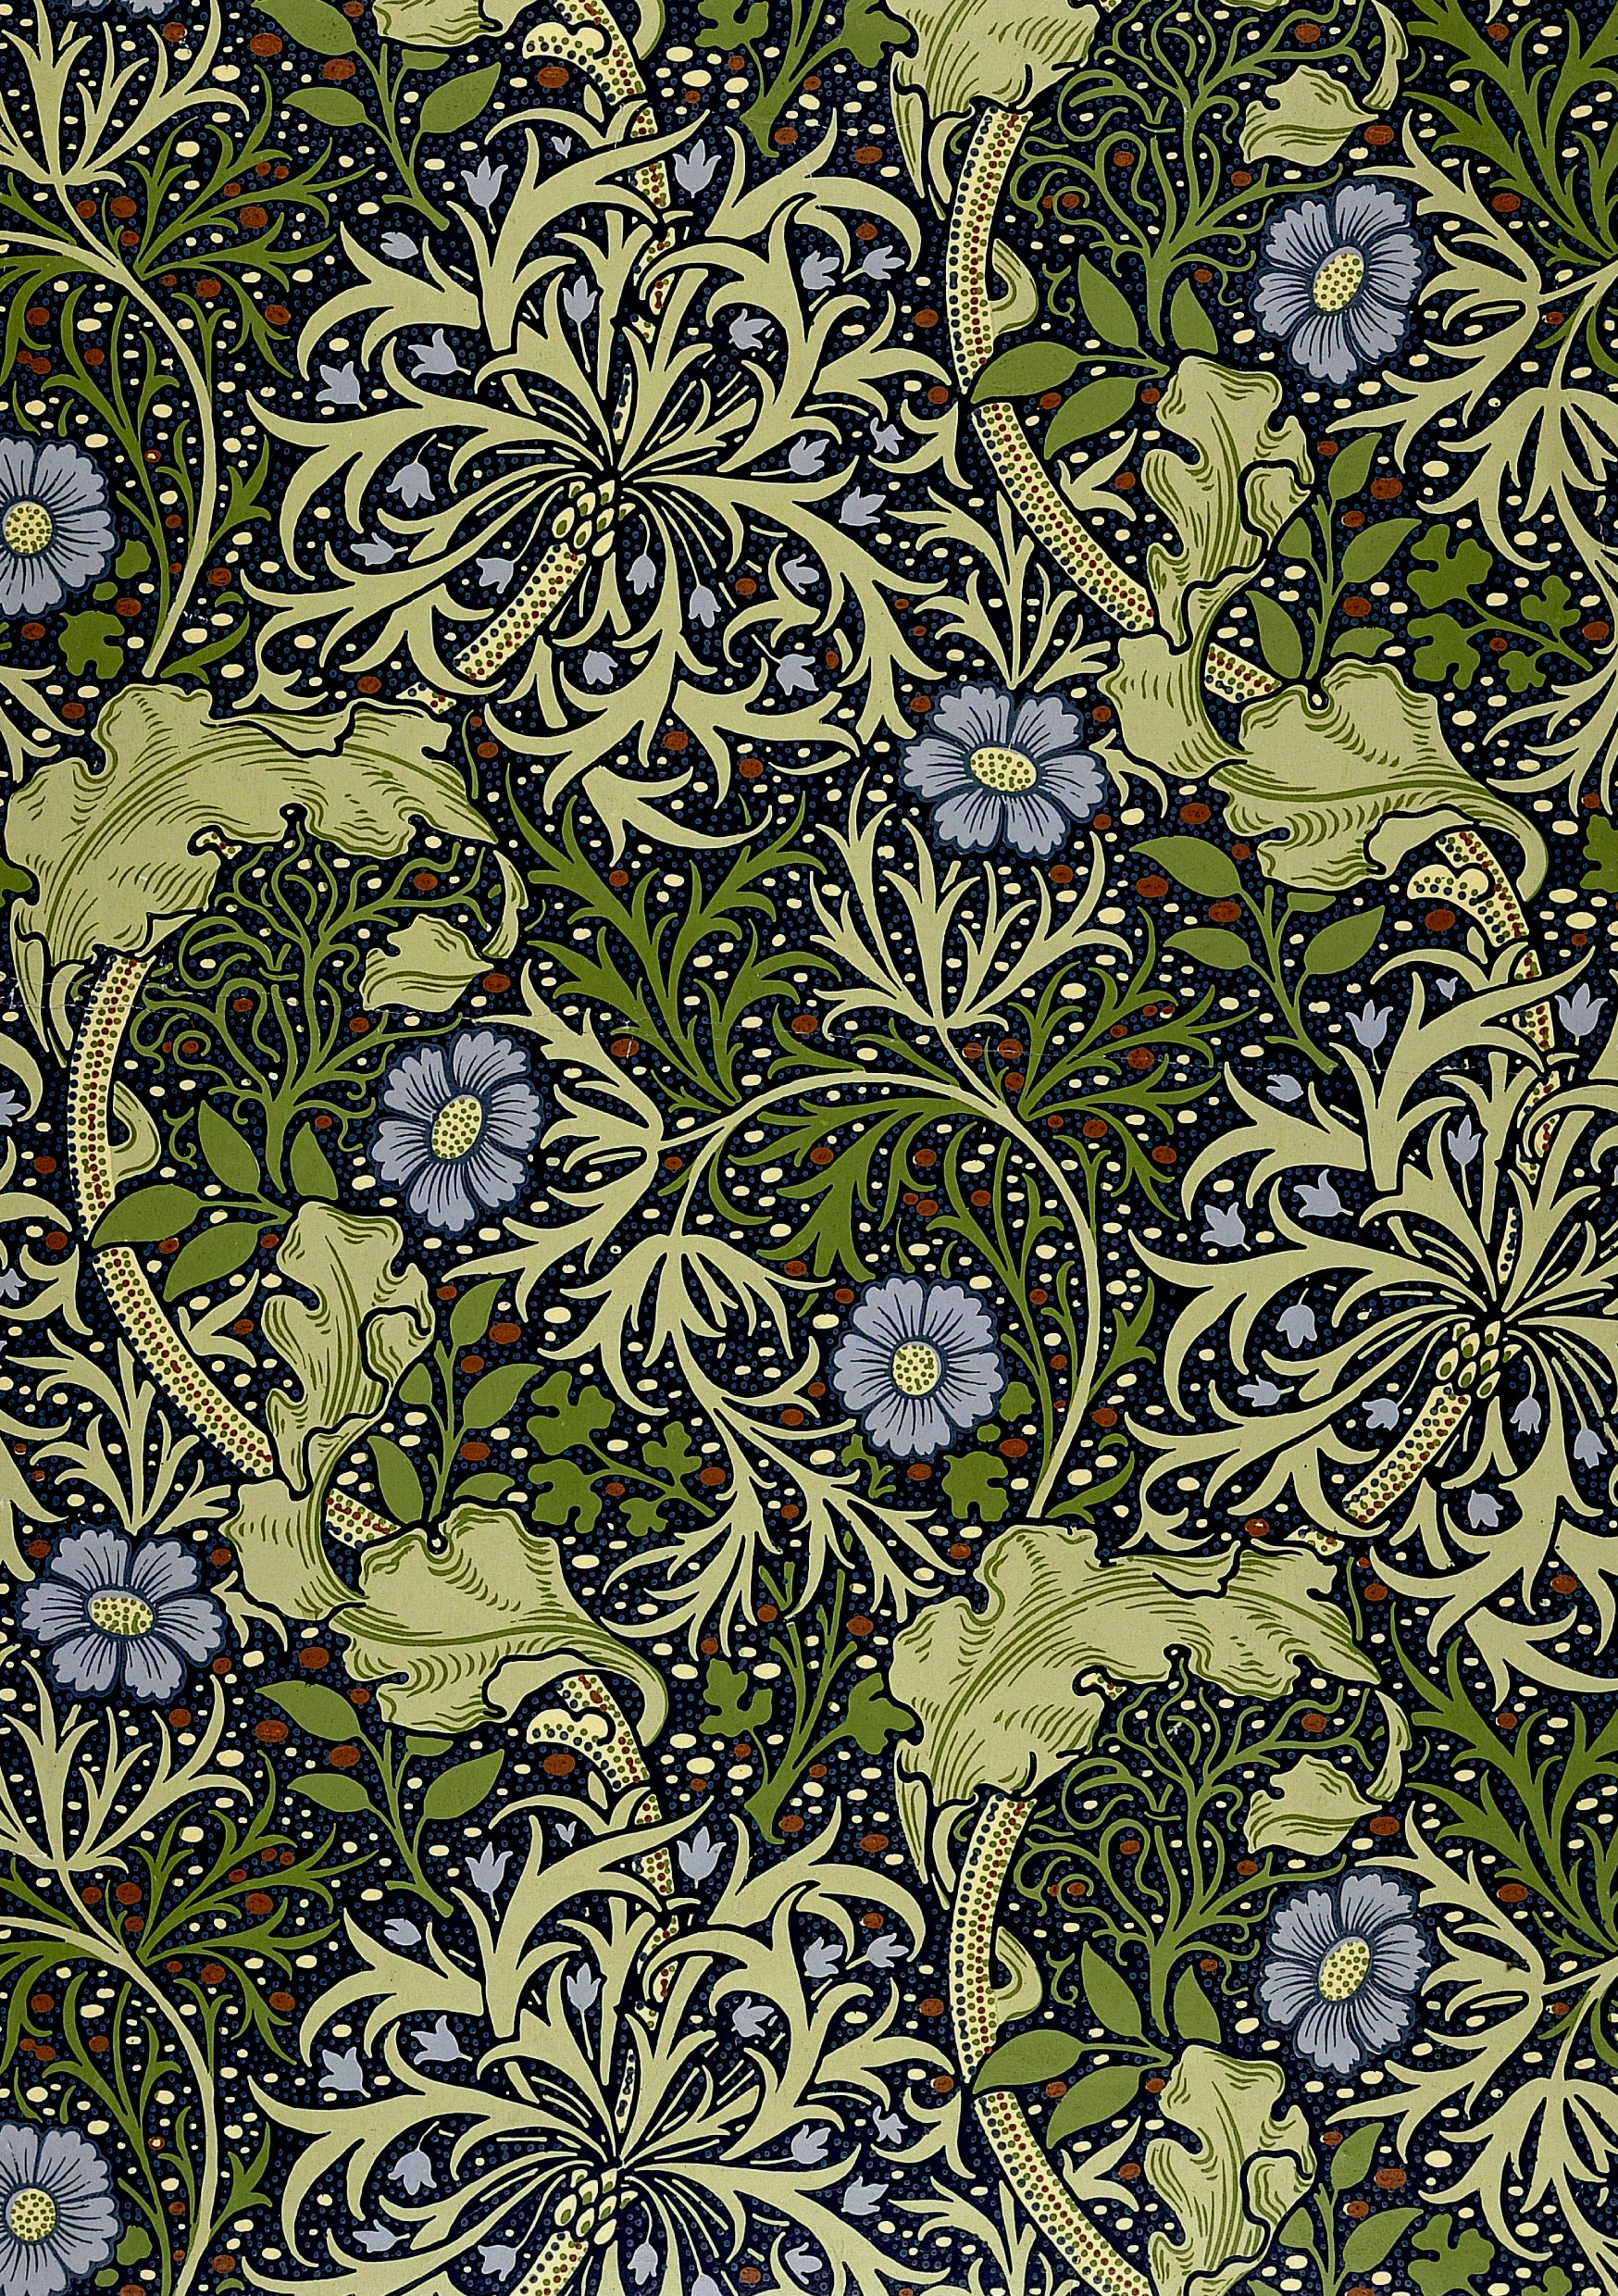 Seaweed Designed By John Henry Dearle For William Morris 1901 William Morris Designs William Morris Wallpaper William Morris Art